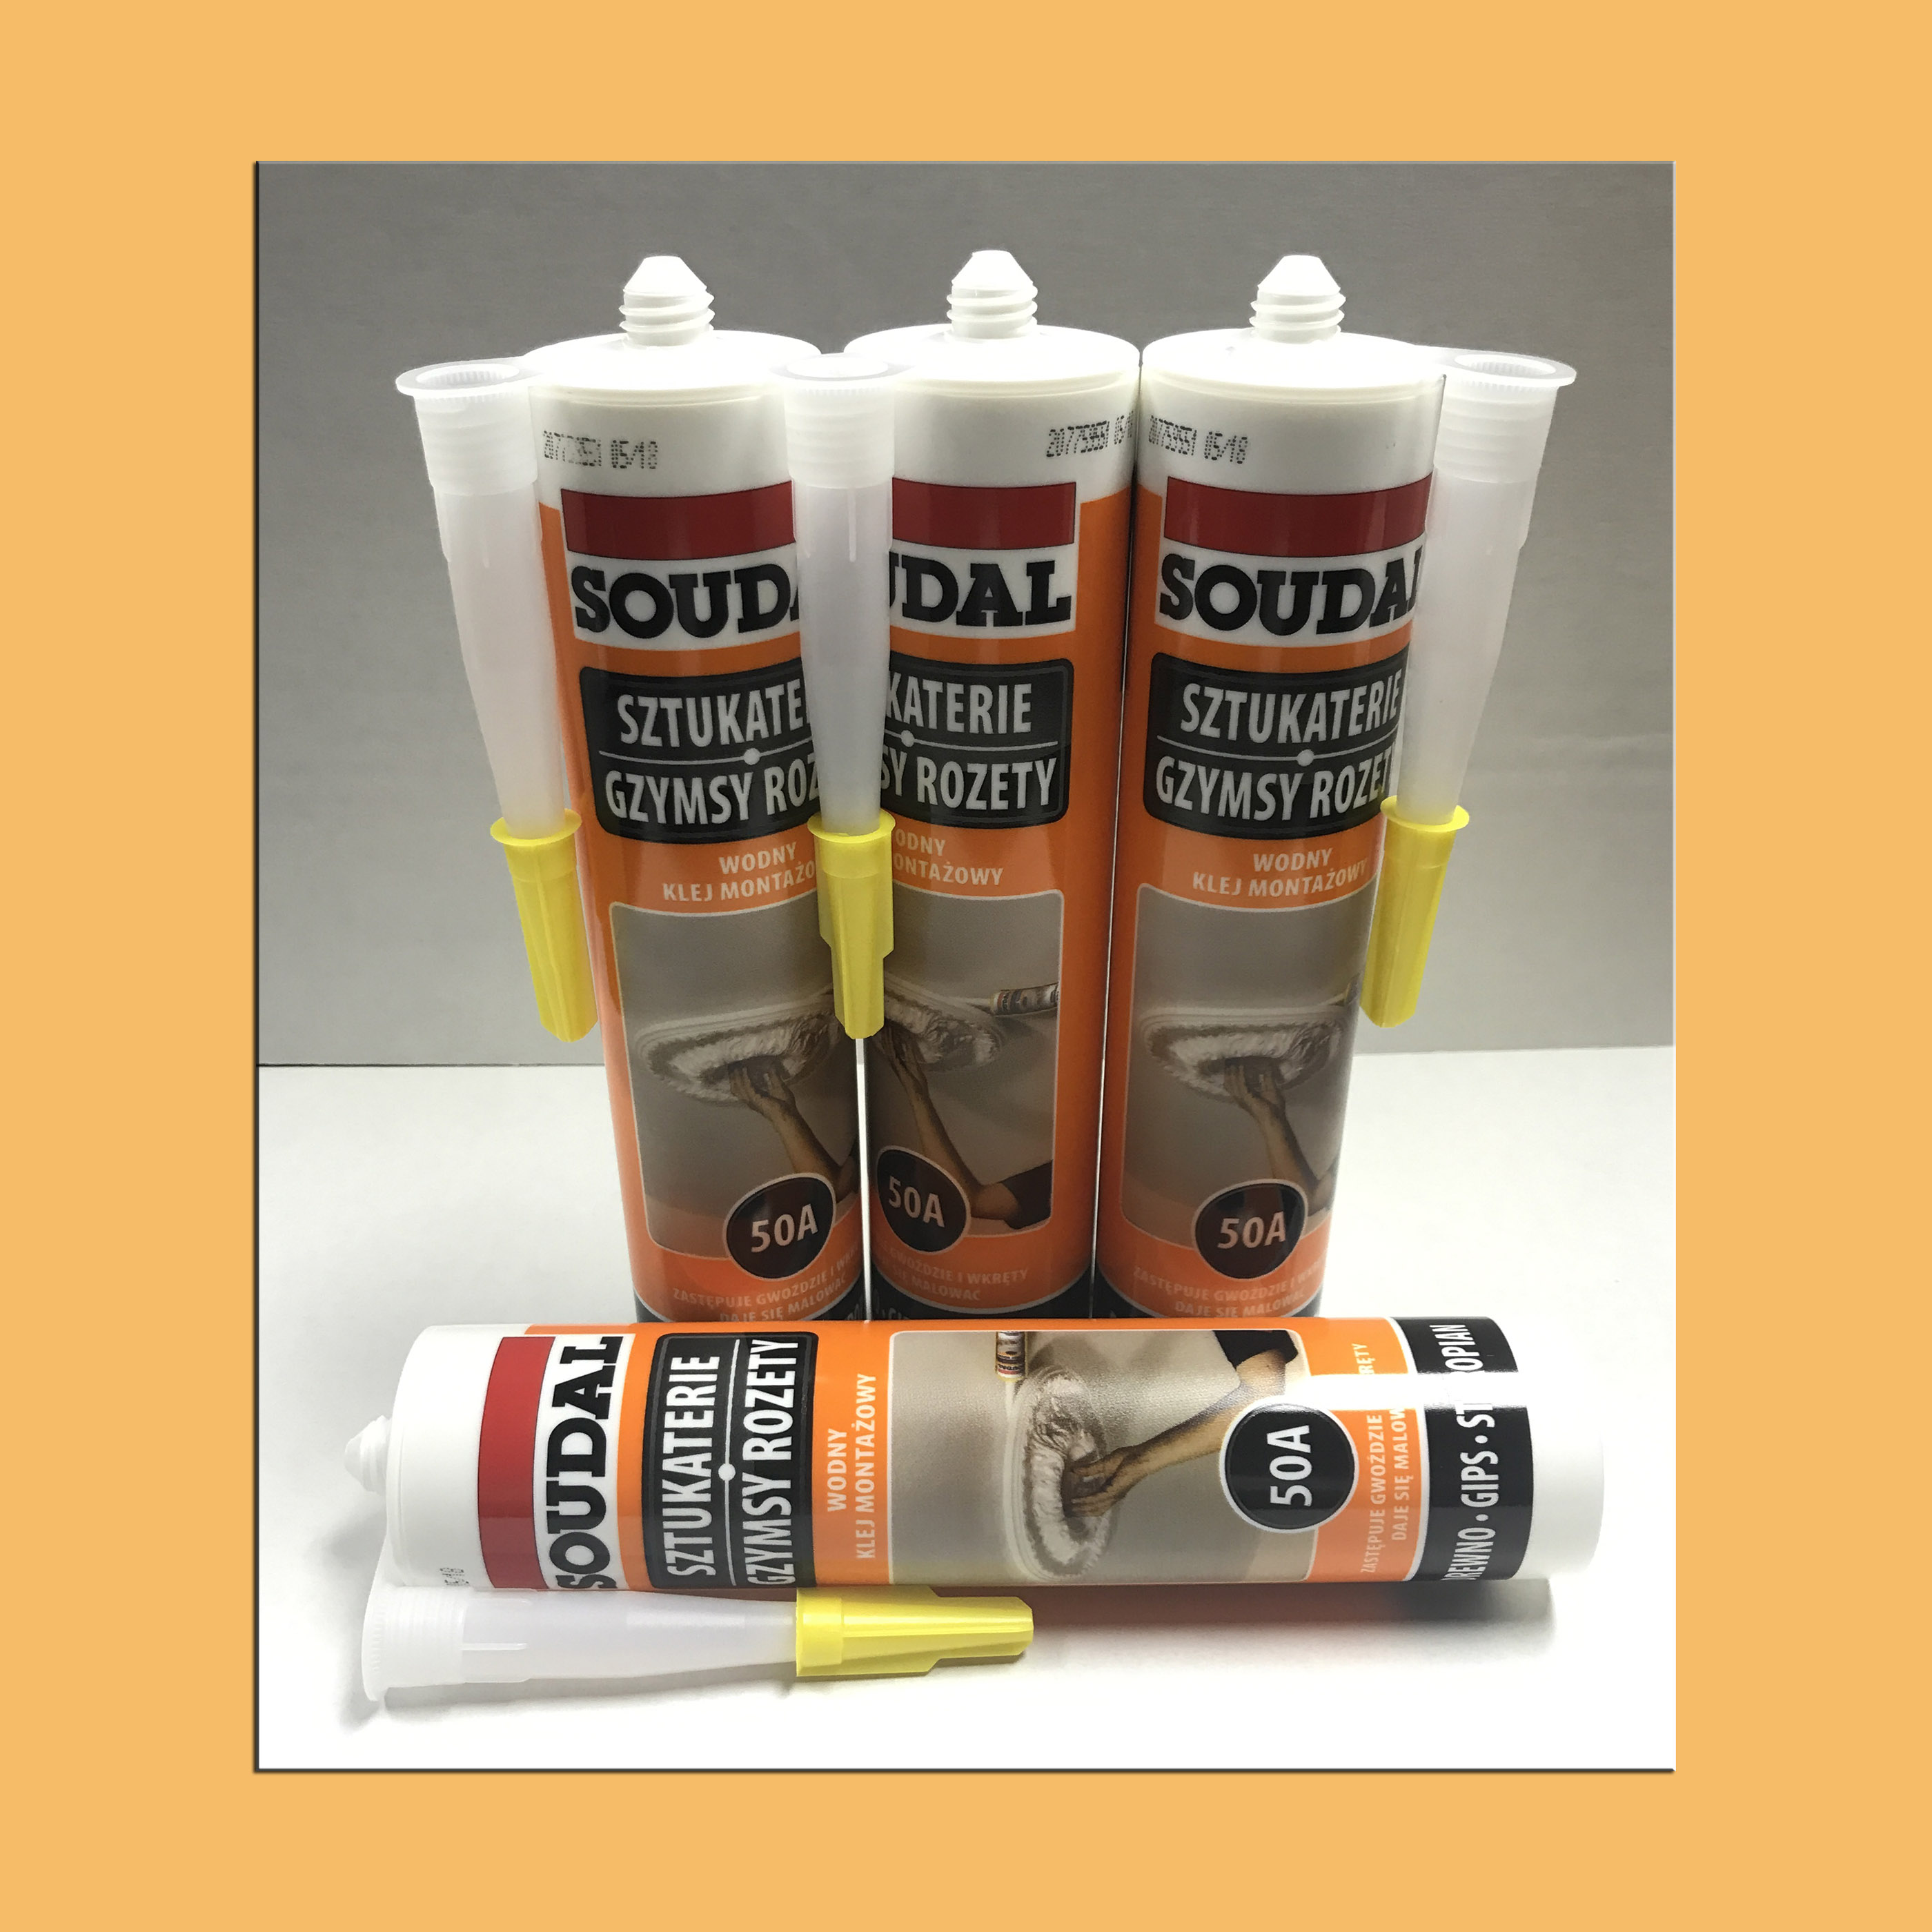 Soudal 50a styrofoam adhesive perfect for ceiling tiles antique soudal 50a is manufactured specifically for gluing foam ceiling tiles up to the ceiling you may still use acryl pro available from home depot however dailygadgetfo Gallery